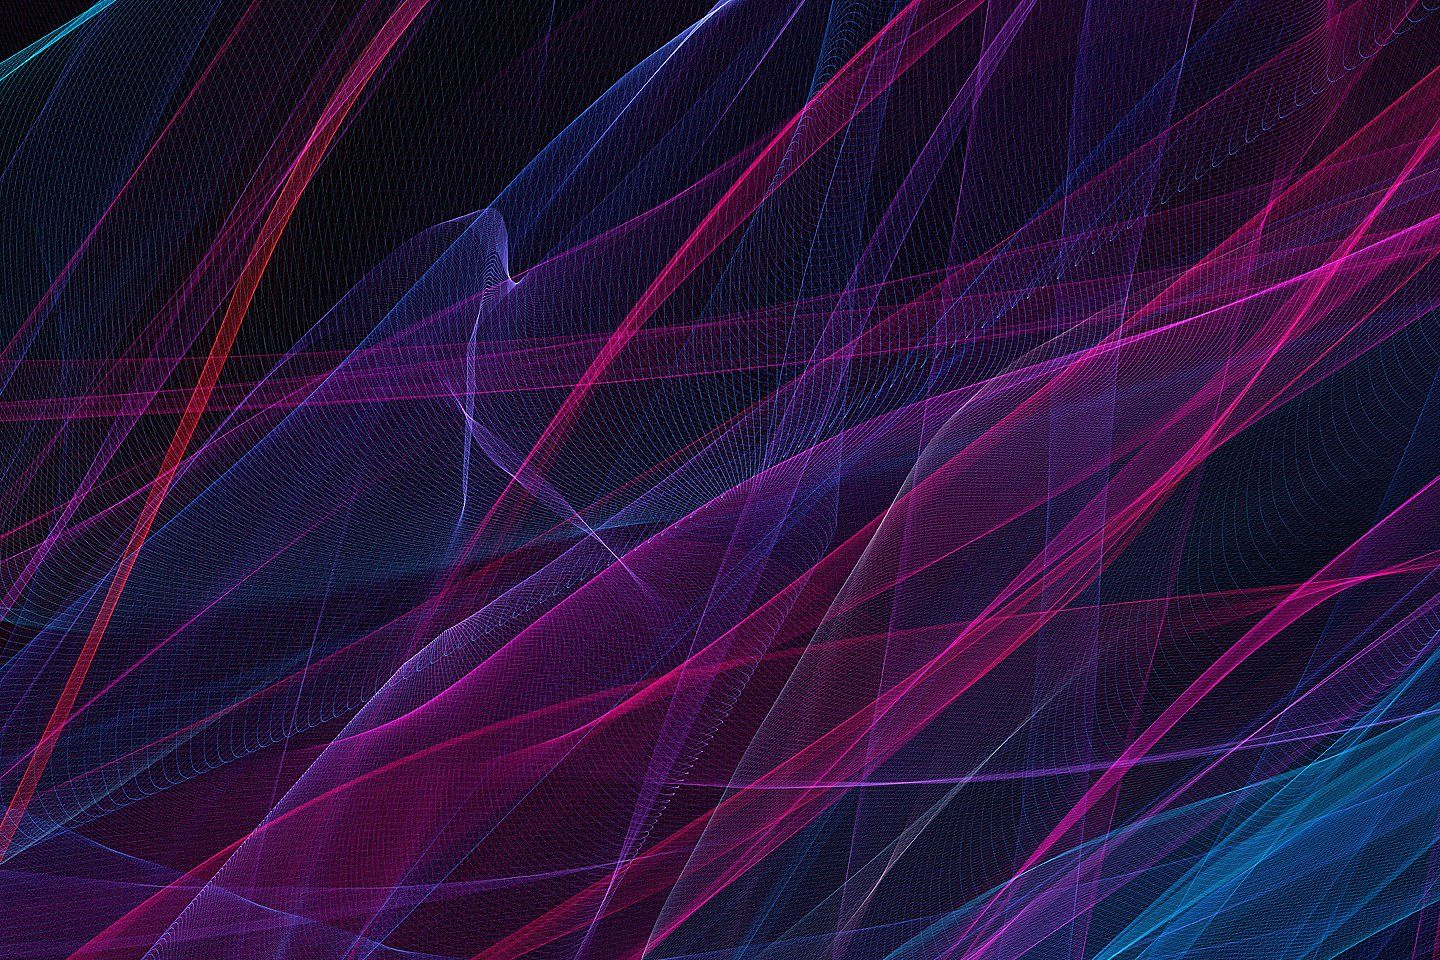 Abstract Wave Background Photoshop backgrounds Background 1440x960